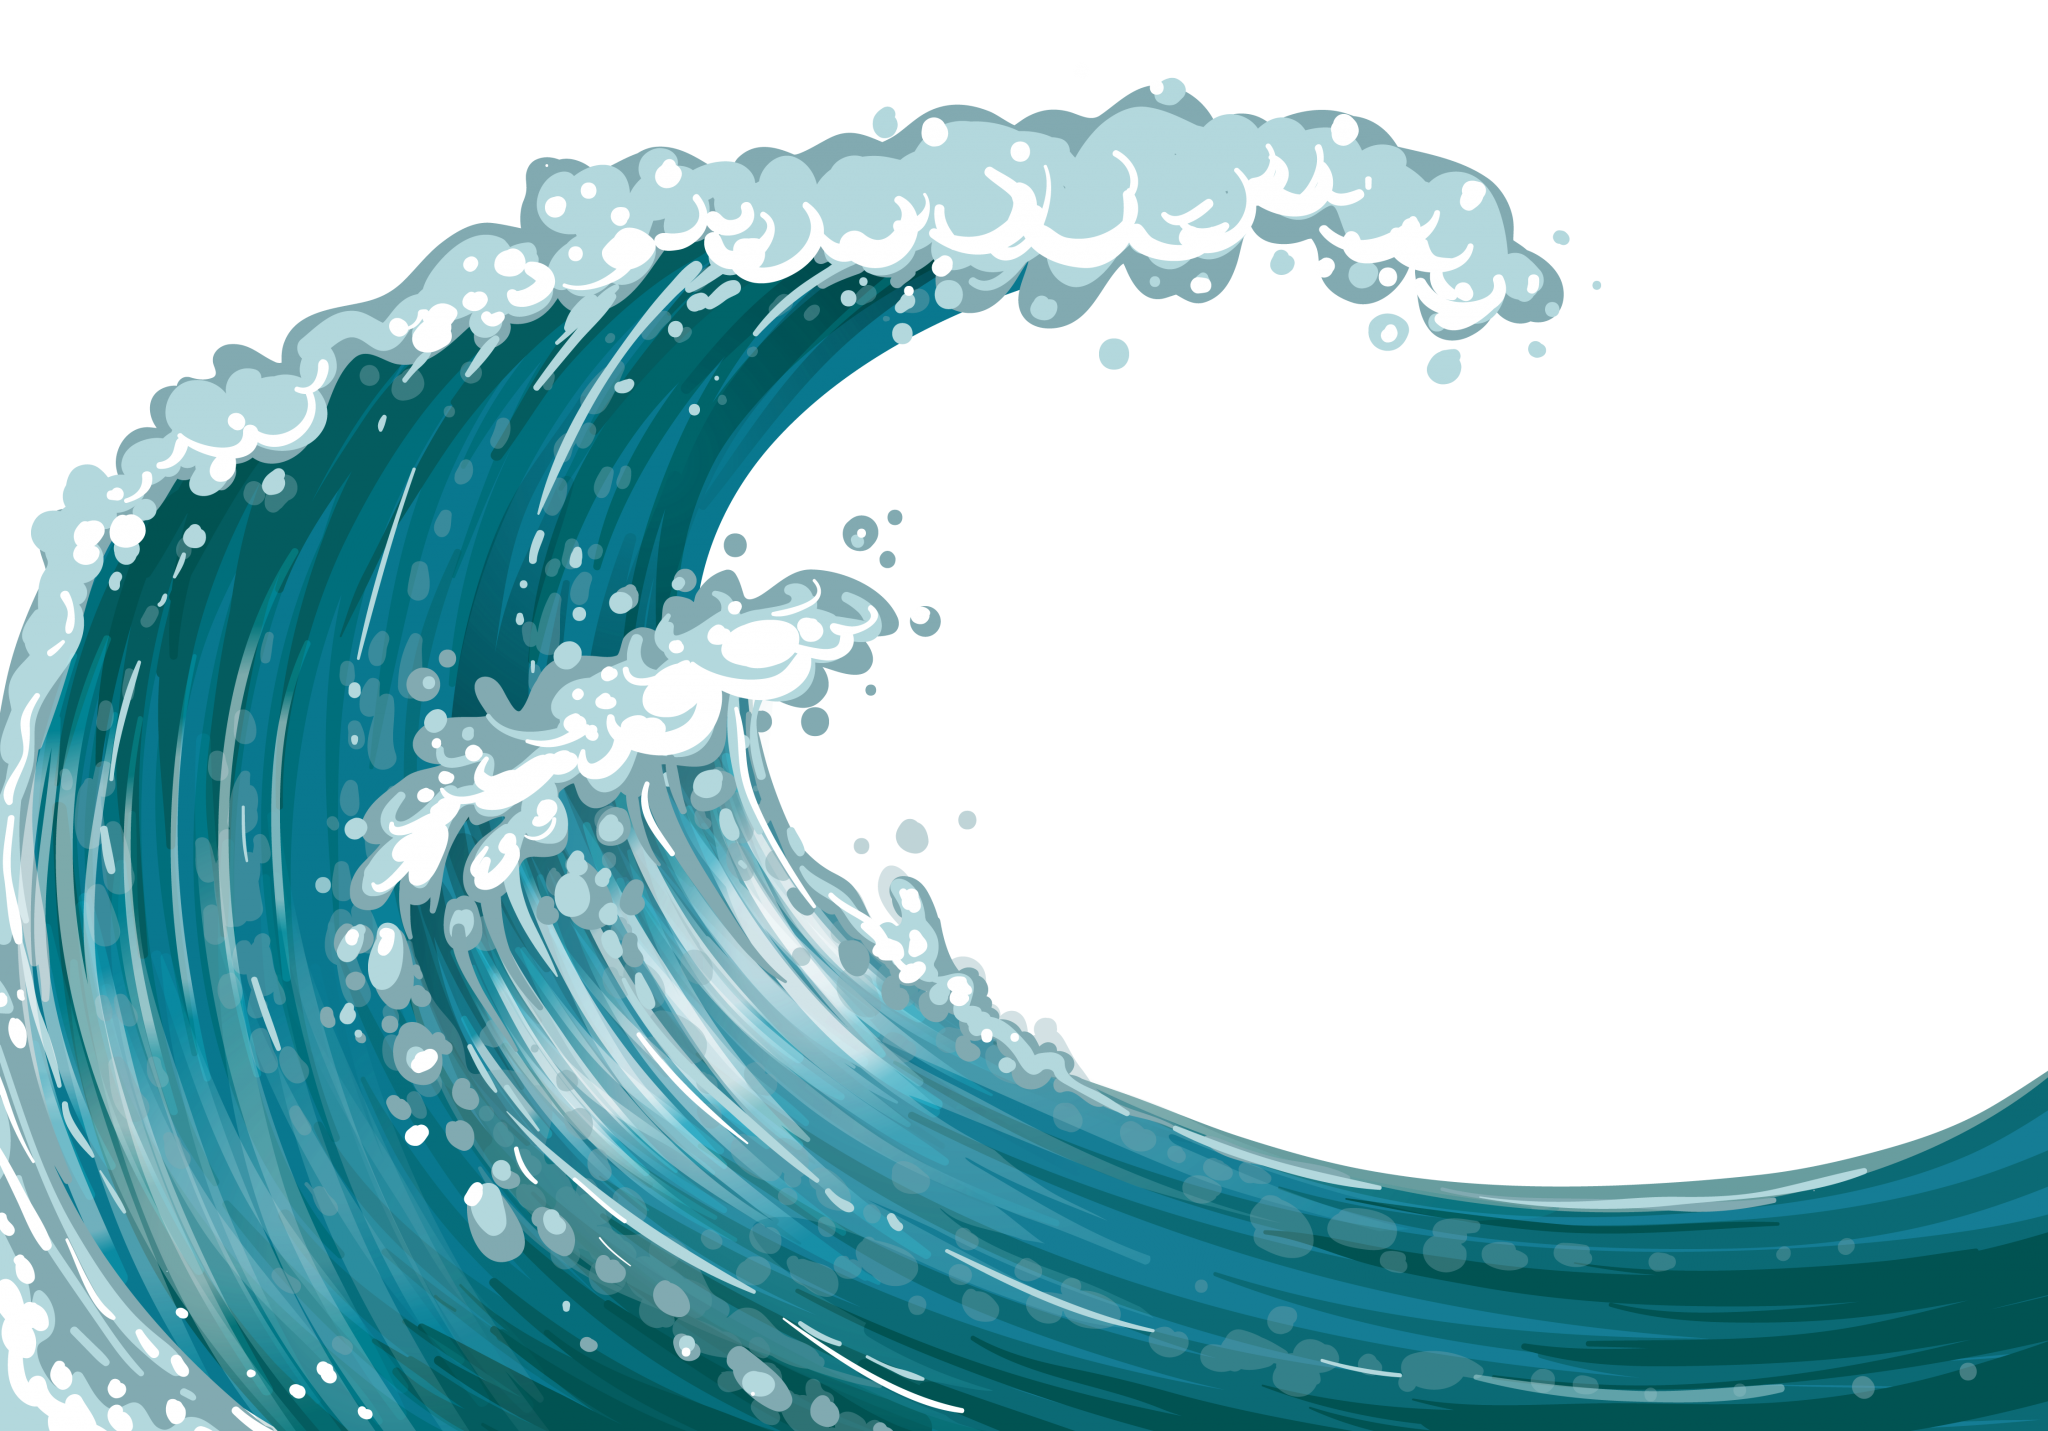 wave windows backgrounds - Waves PNG HD